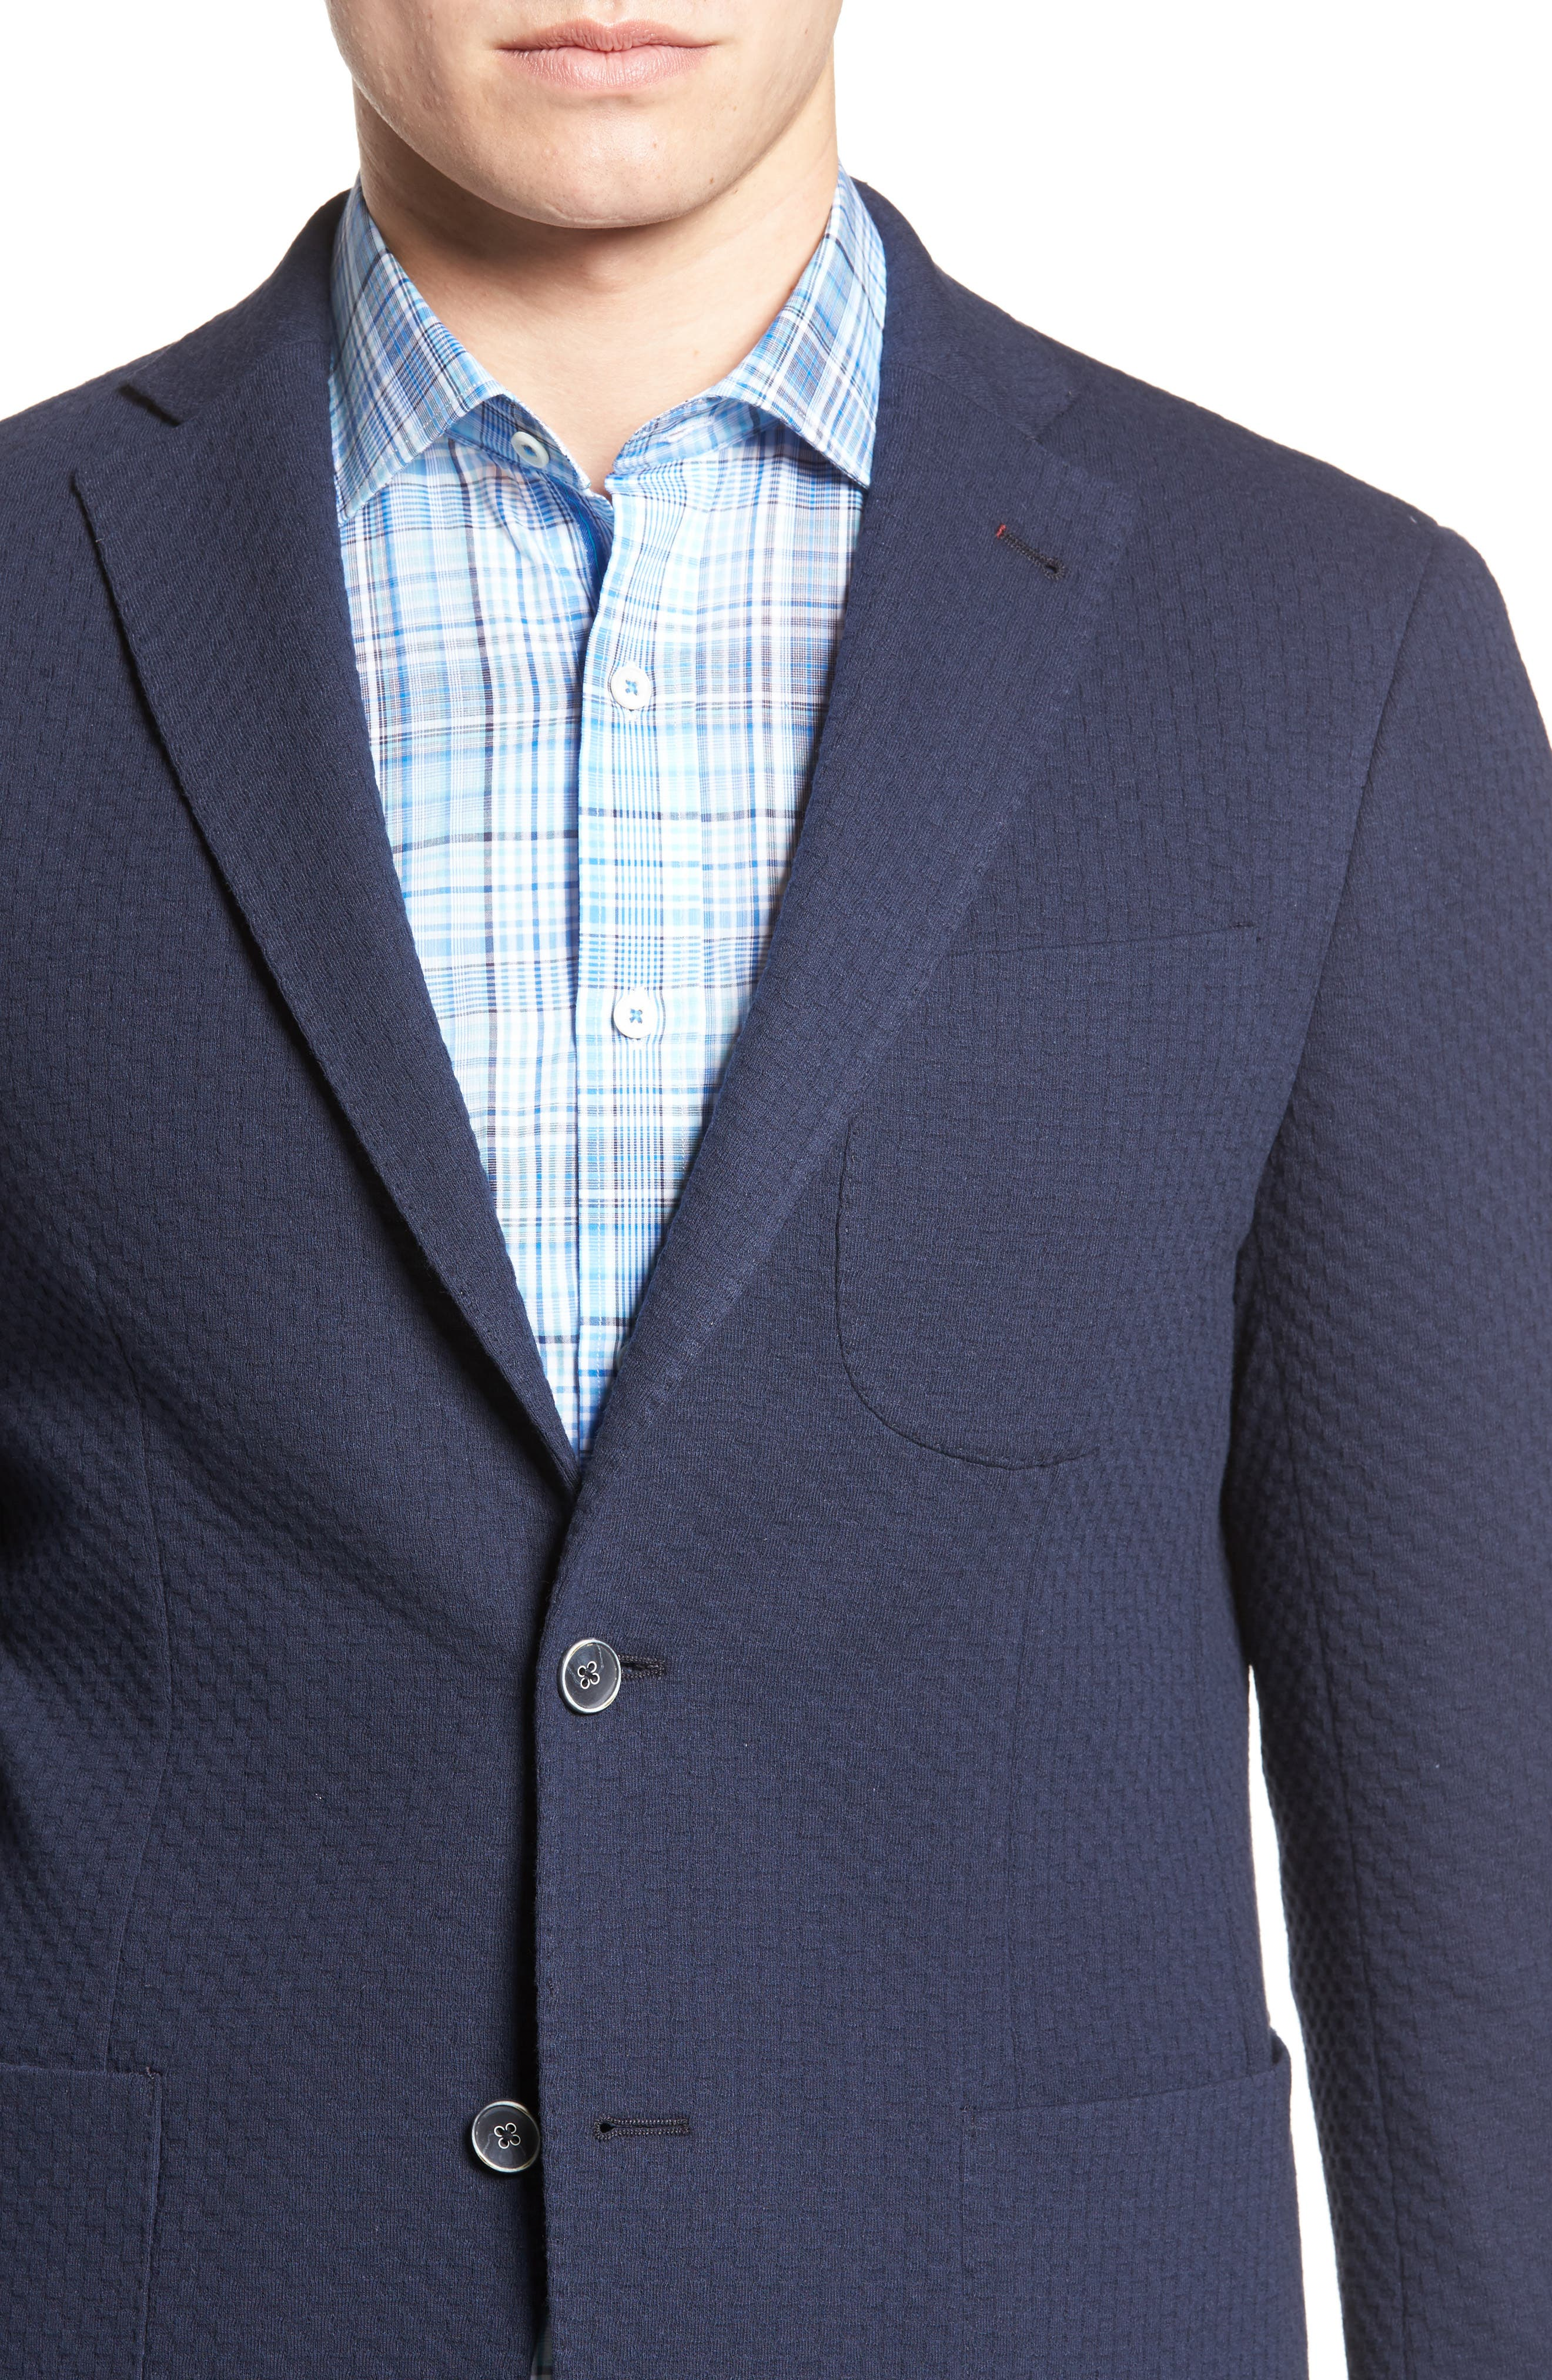 Textured Blazer,                             Alternate thumbnail 4, color,                             Navy